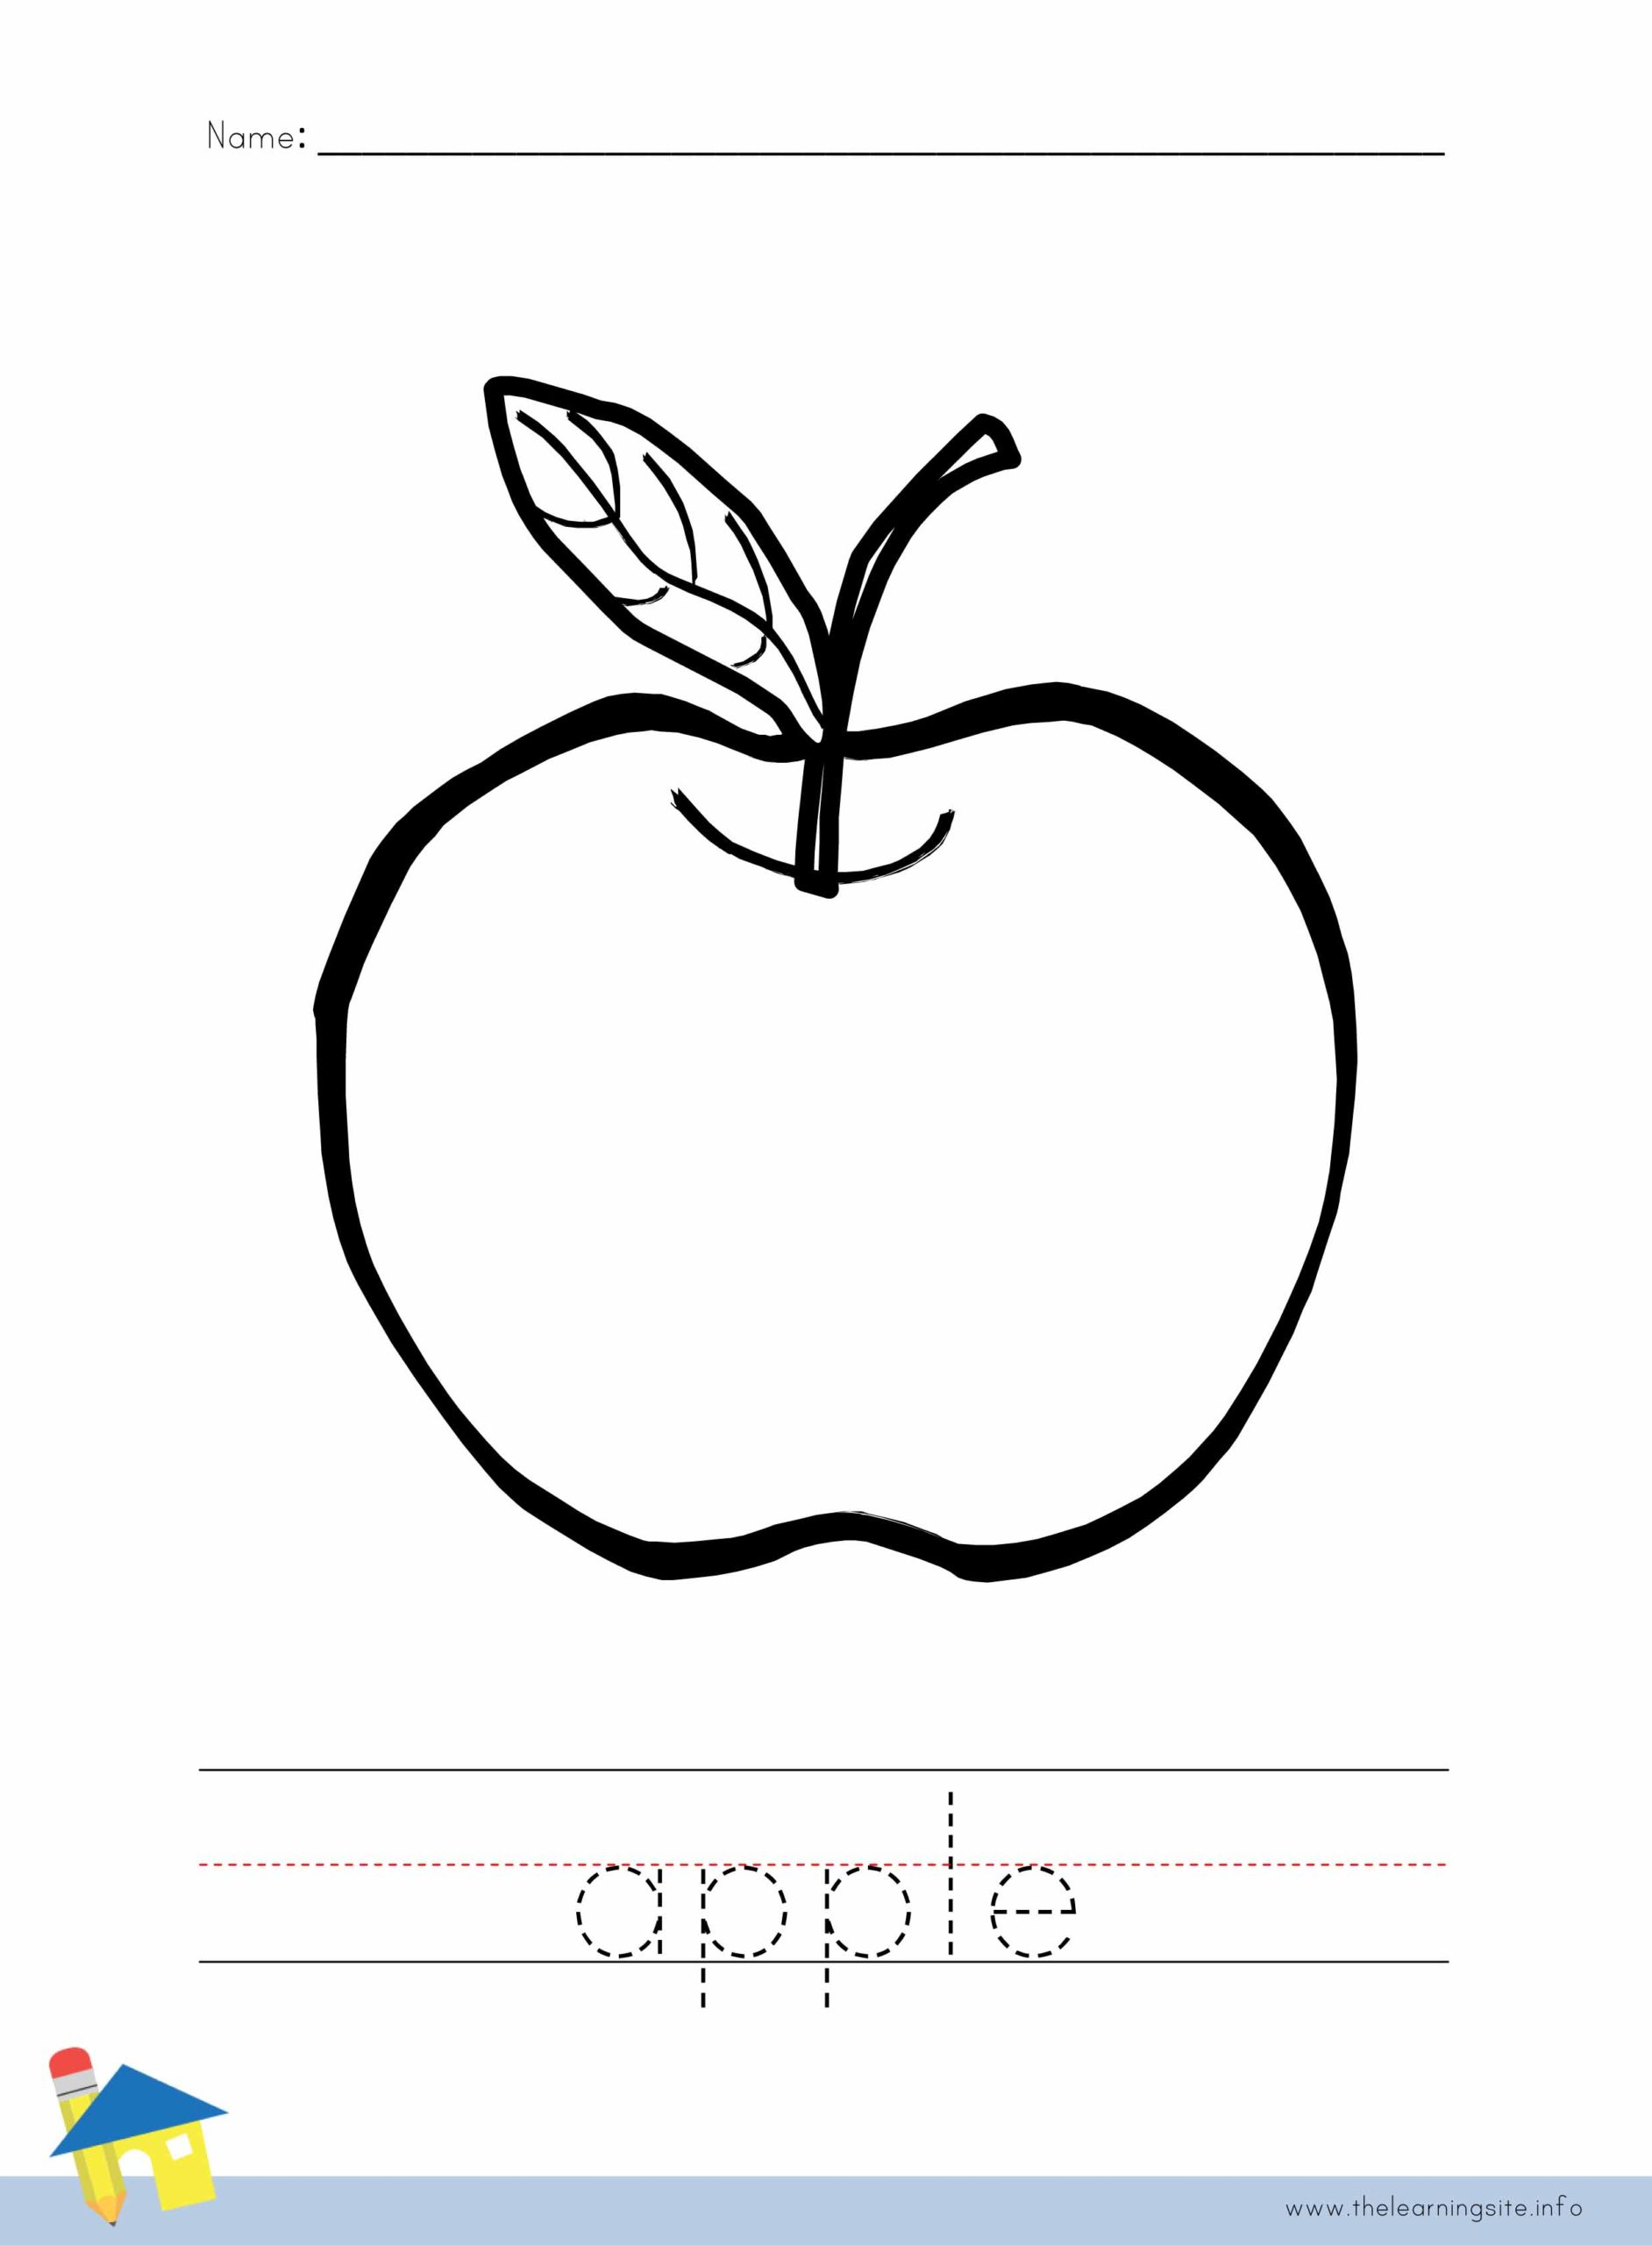 Apple Coloring Worksheet The Learning Site